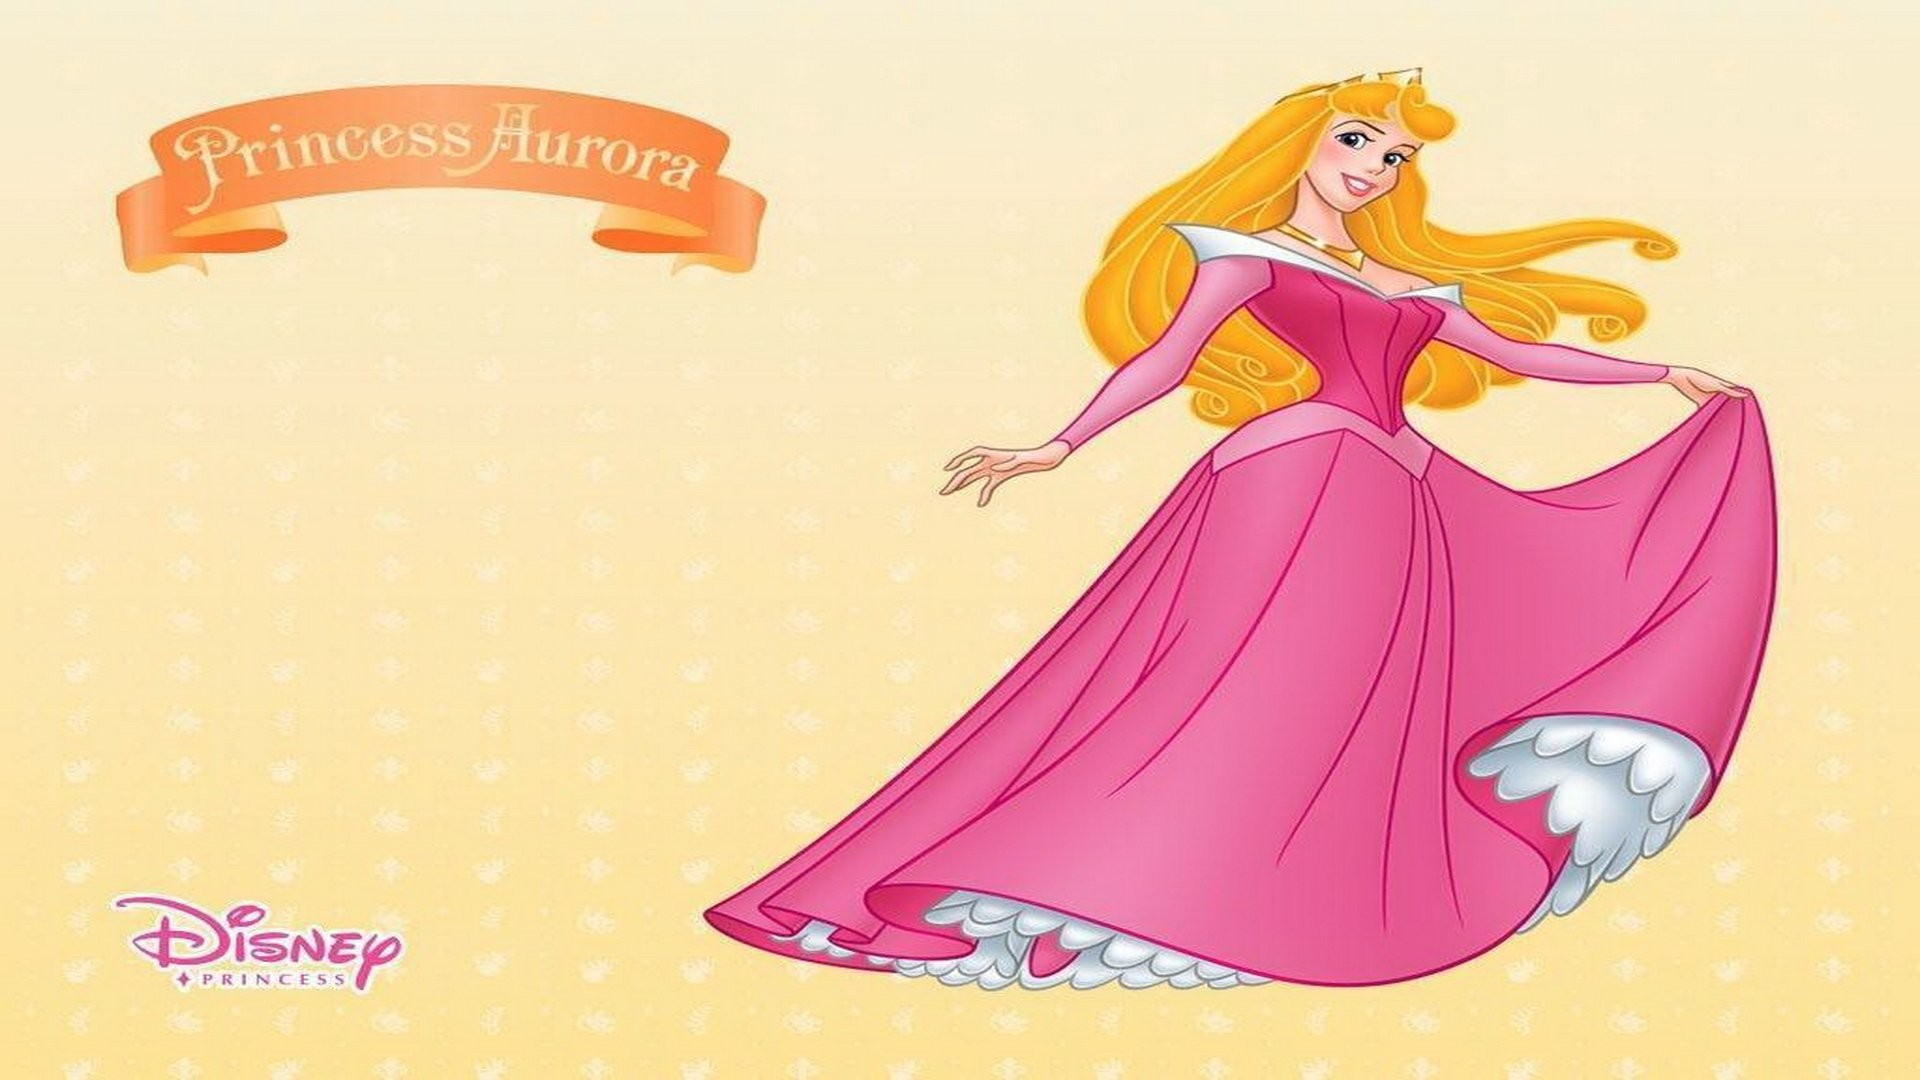 1920x1200 Disney Princess Sleeping Beauty Wallpaper